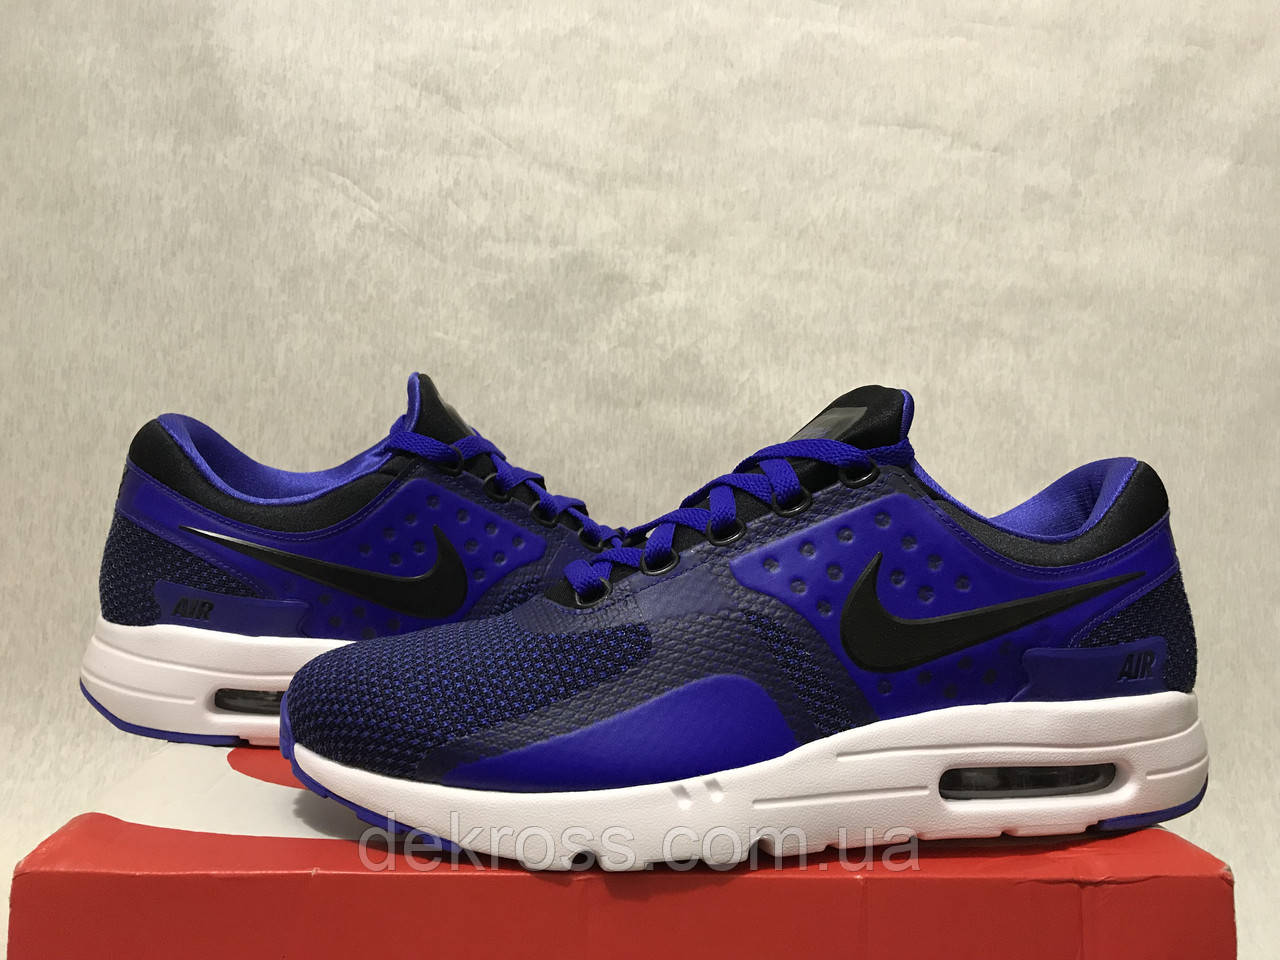 Кроссовки Nike Air Max Zero Essential (46) Оригинал 876070-001